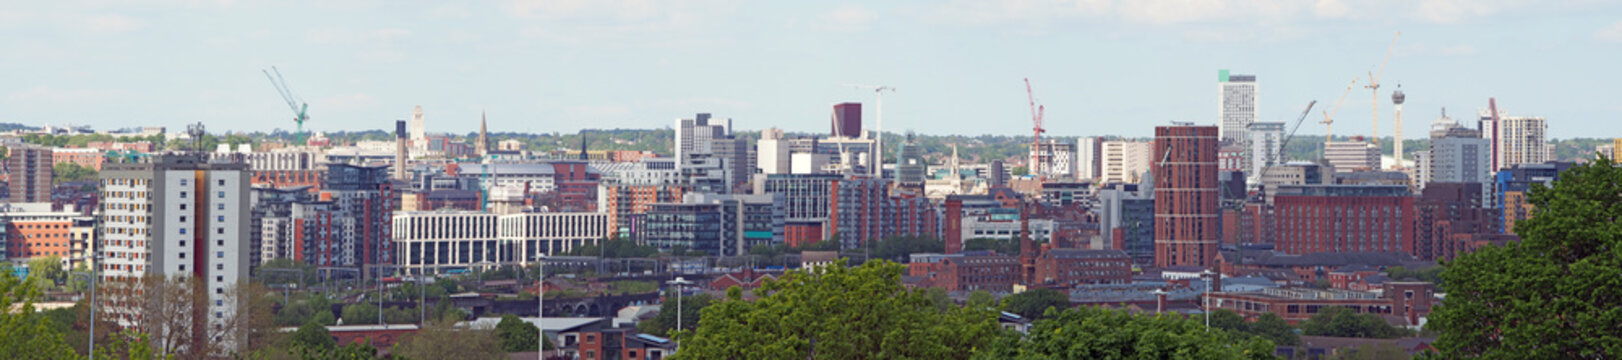 a wide panoramic view showing the whole of leeds city center with towers apartments roads and commercial buildings against a blue sky